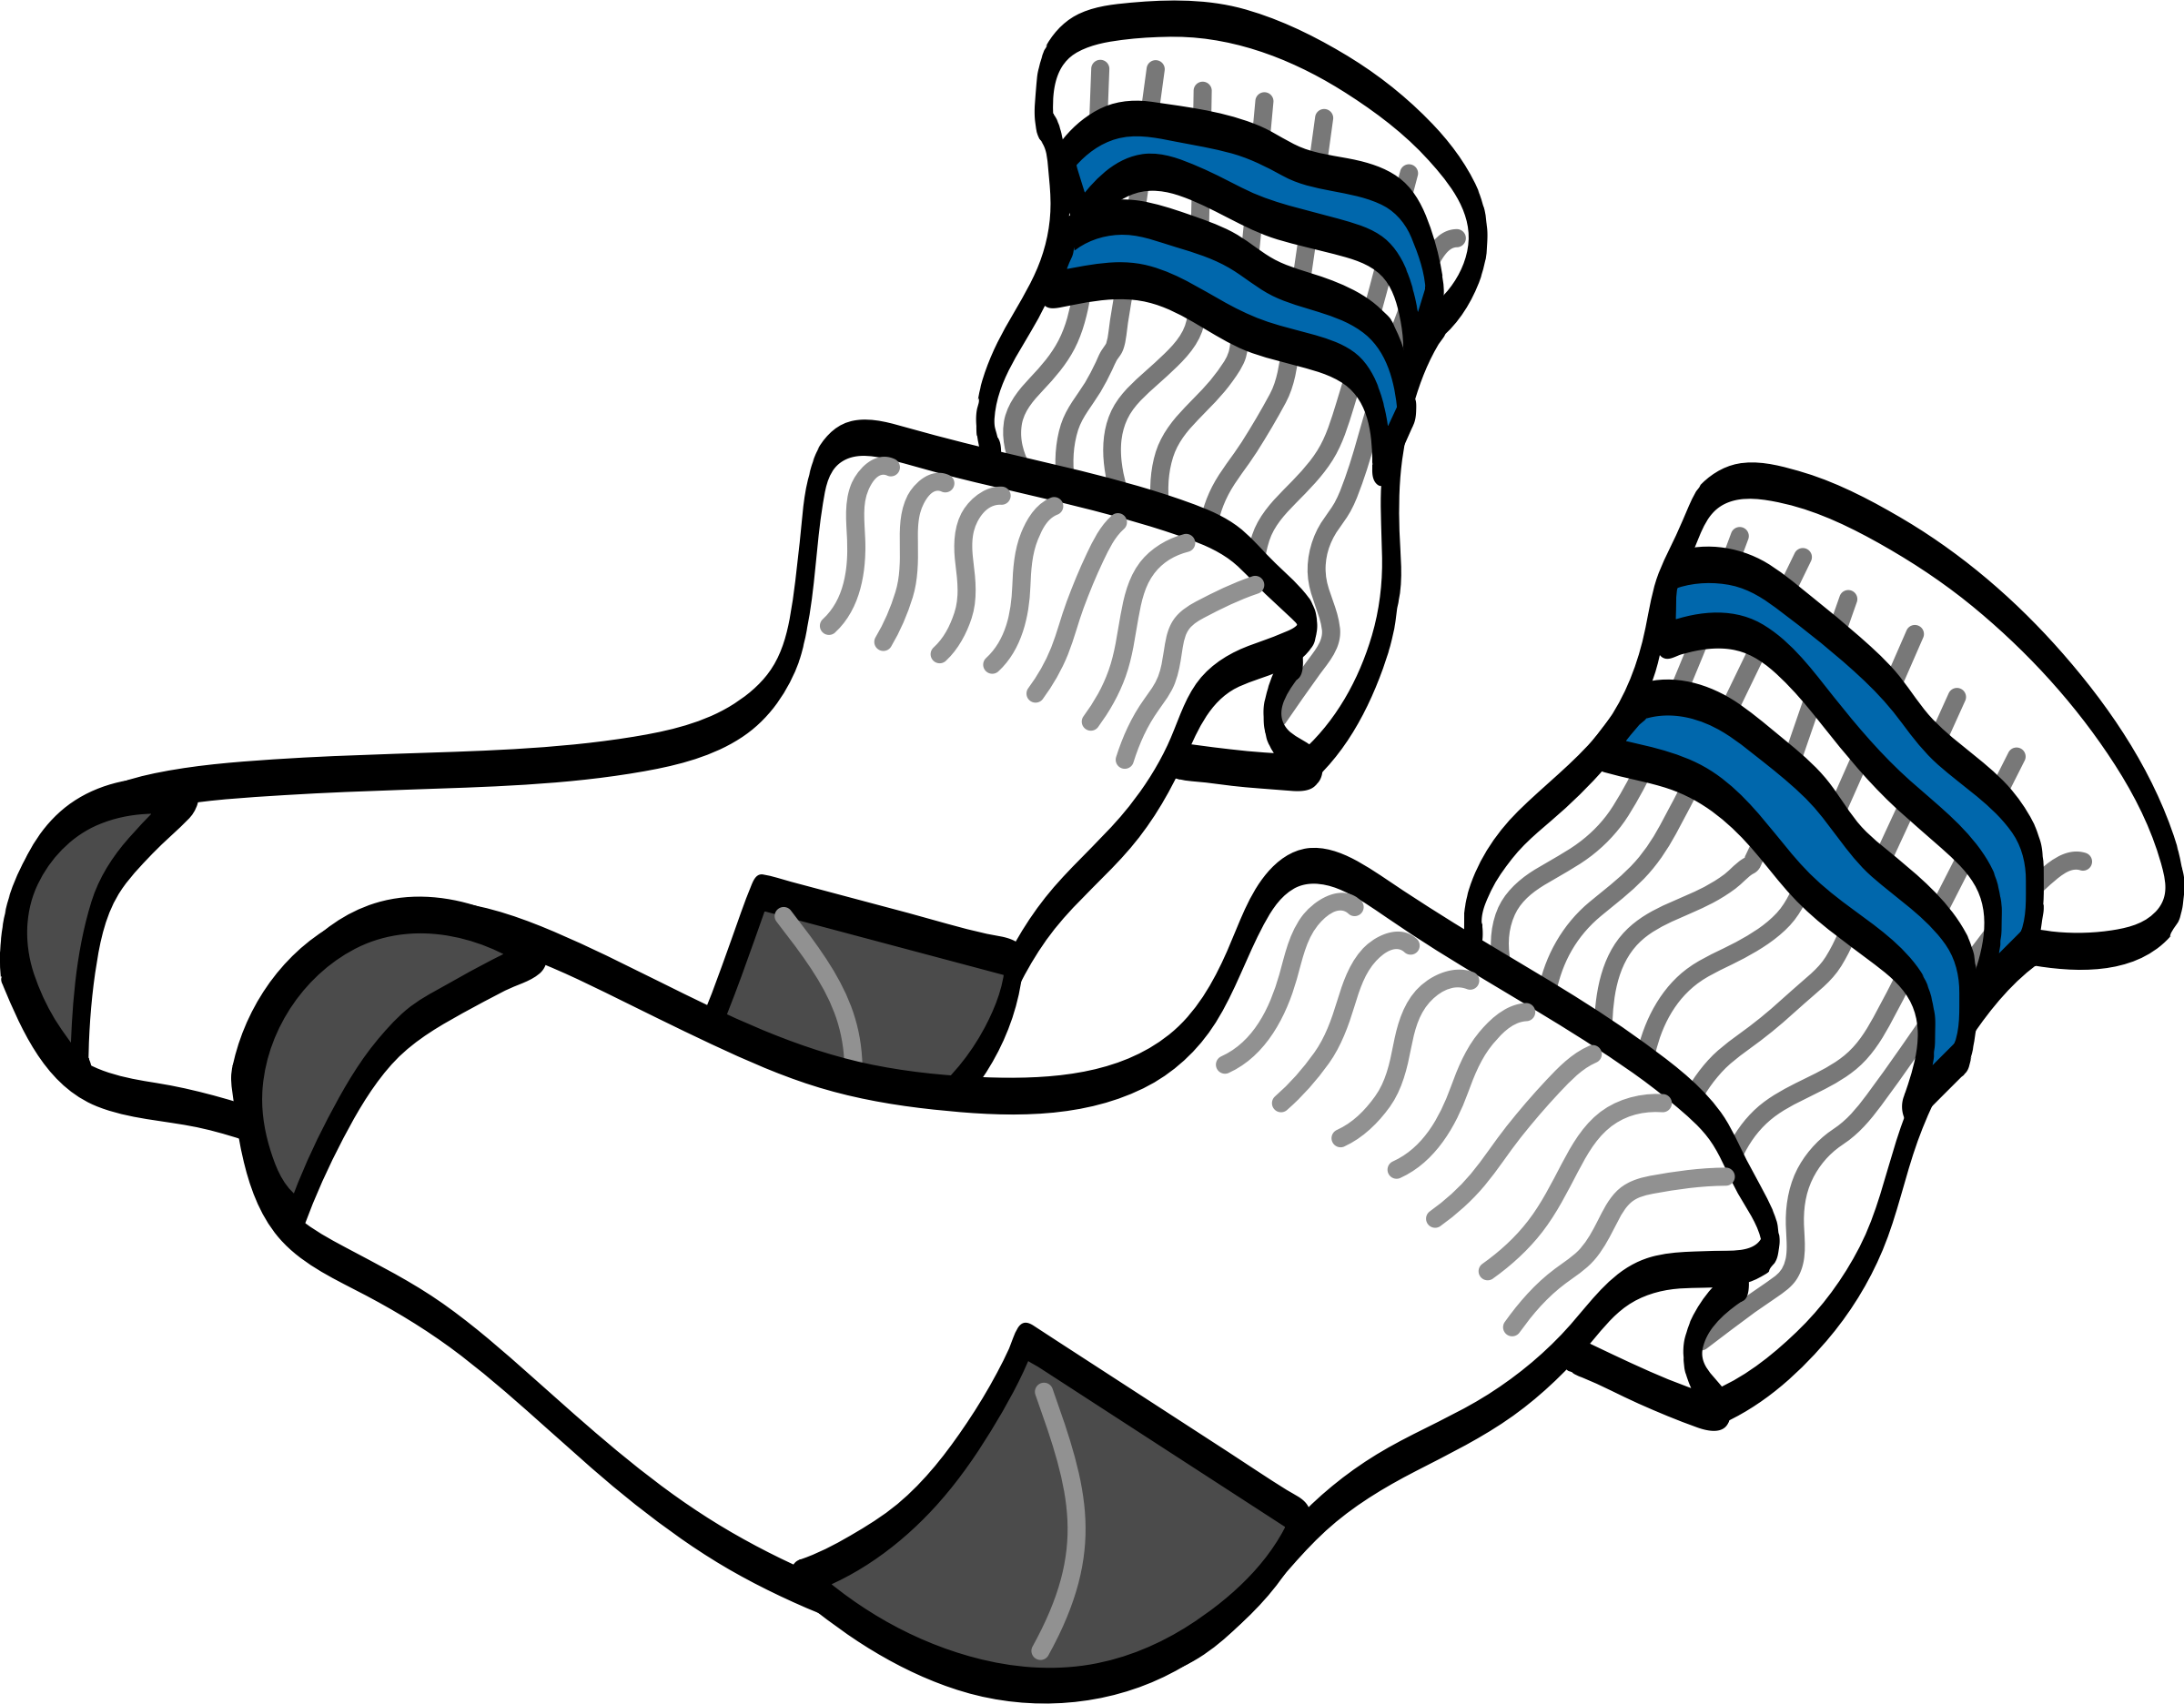 Socks clipart winged. Athletic crew icons png